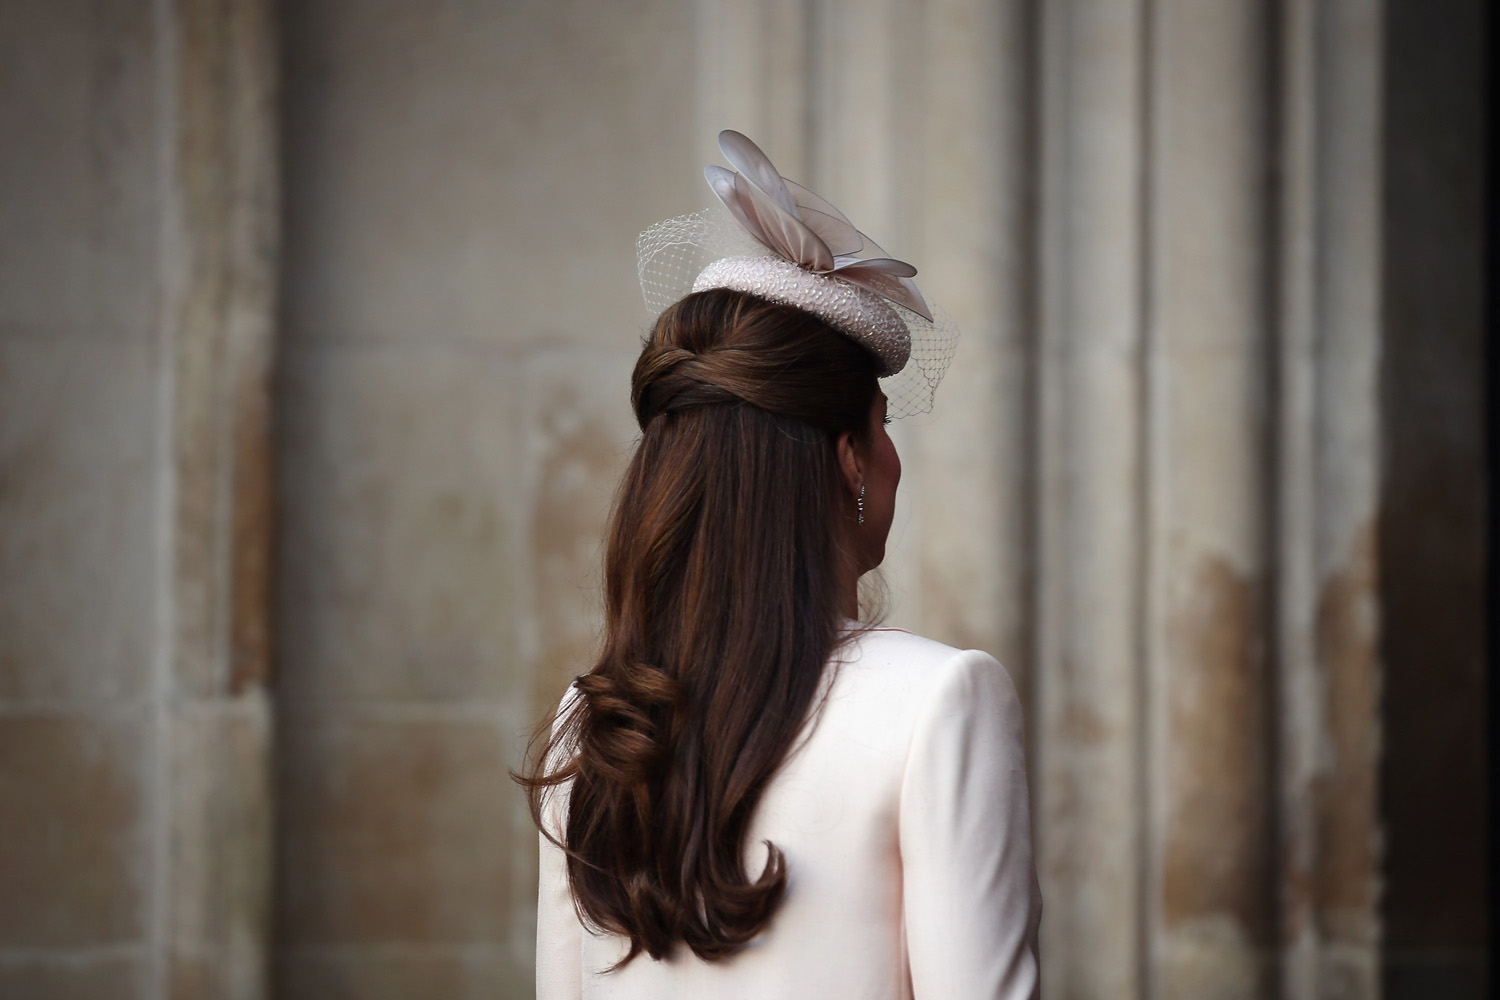 June 4, 2013. Catherine, Duchess of Cambridge (Hat, hair detail) arrives for a service of celebration to mark the 60th anniversary of the Coronation Queen Elizabeth II at Westminster Abbey in London.